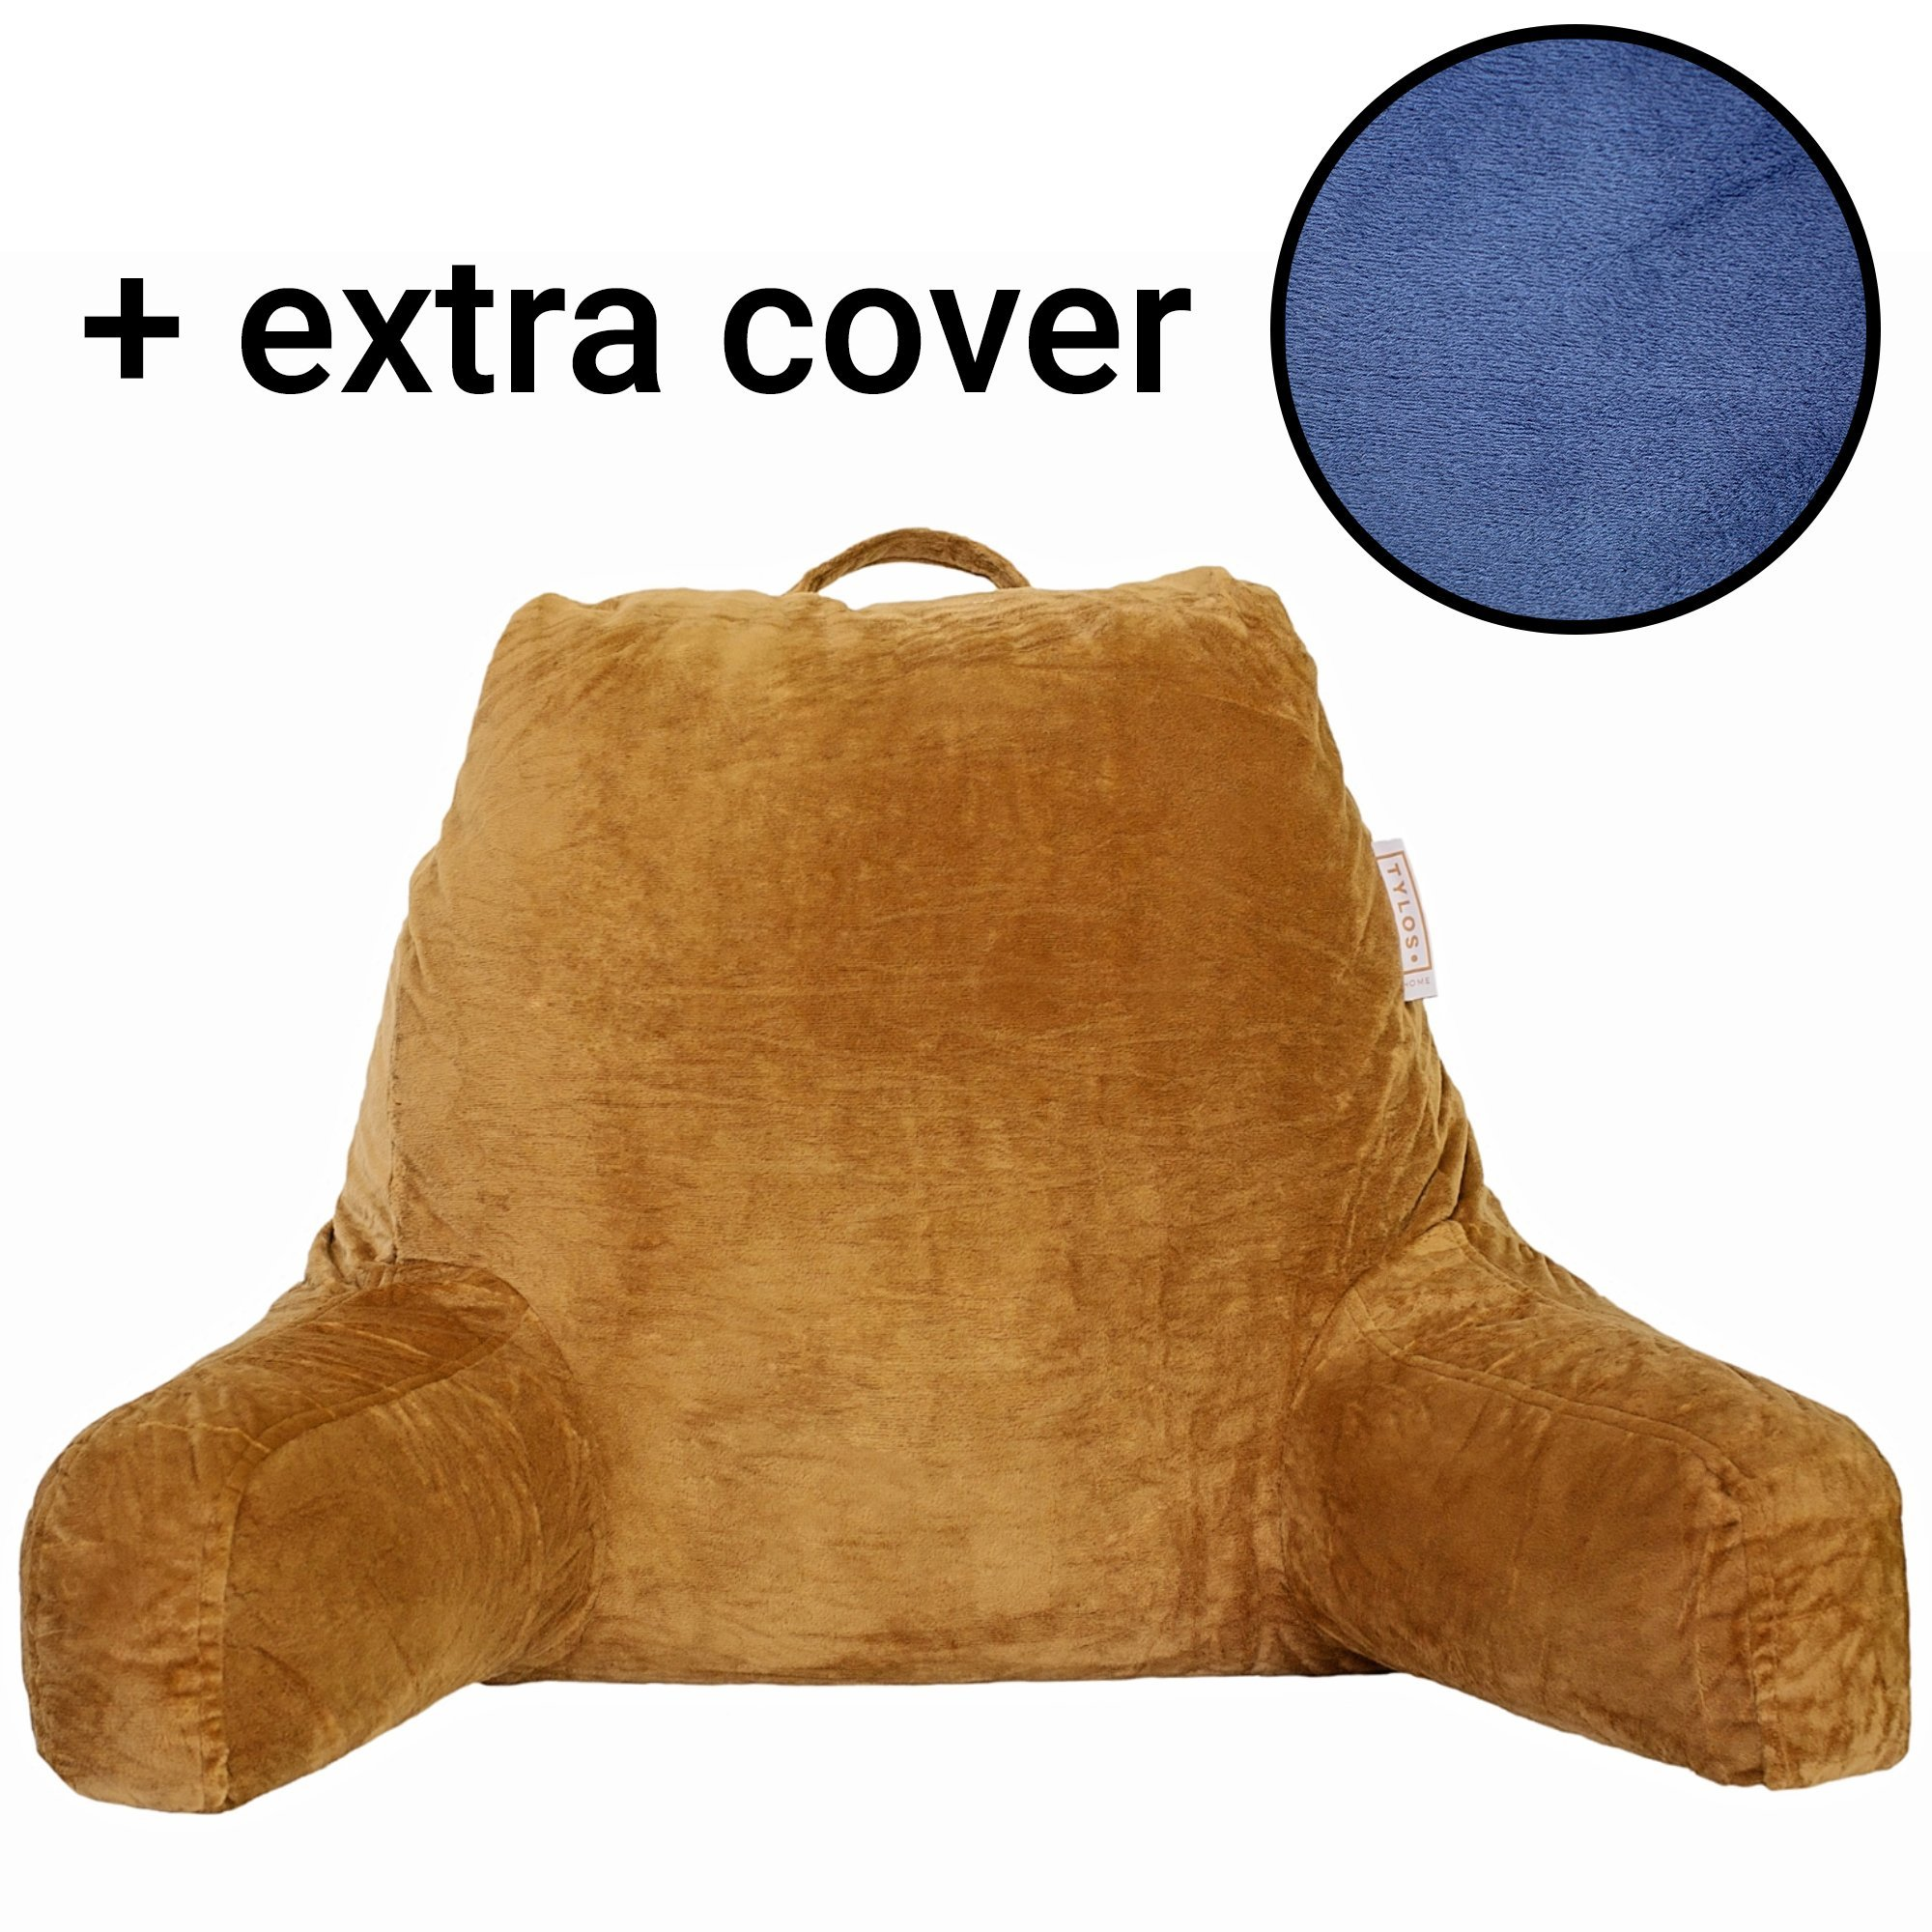 New 2018 Reading Pillow with Two Covers Pack – Pillow with Arms - Removable and Washable Velour Cover - Shredded Foam Back Support Cushion for Adults Teens Kids